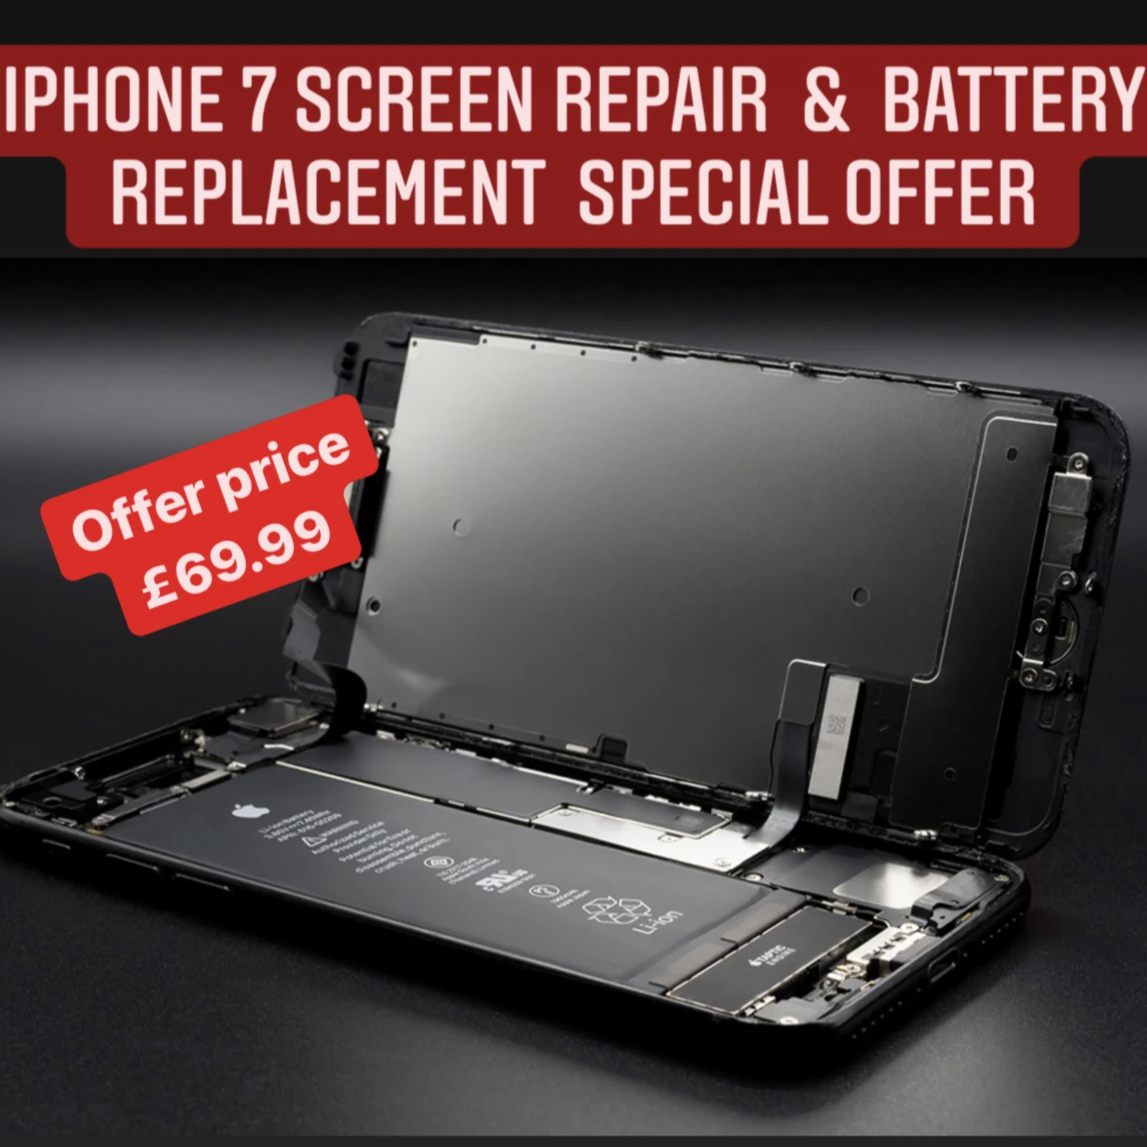 apple iPhone 7 LCD Screen & Battery Replacement Offer